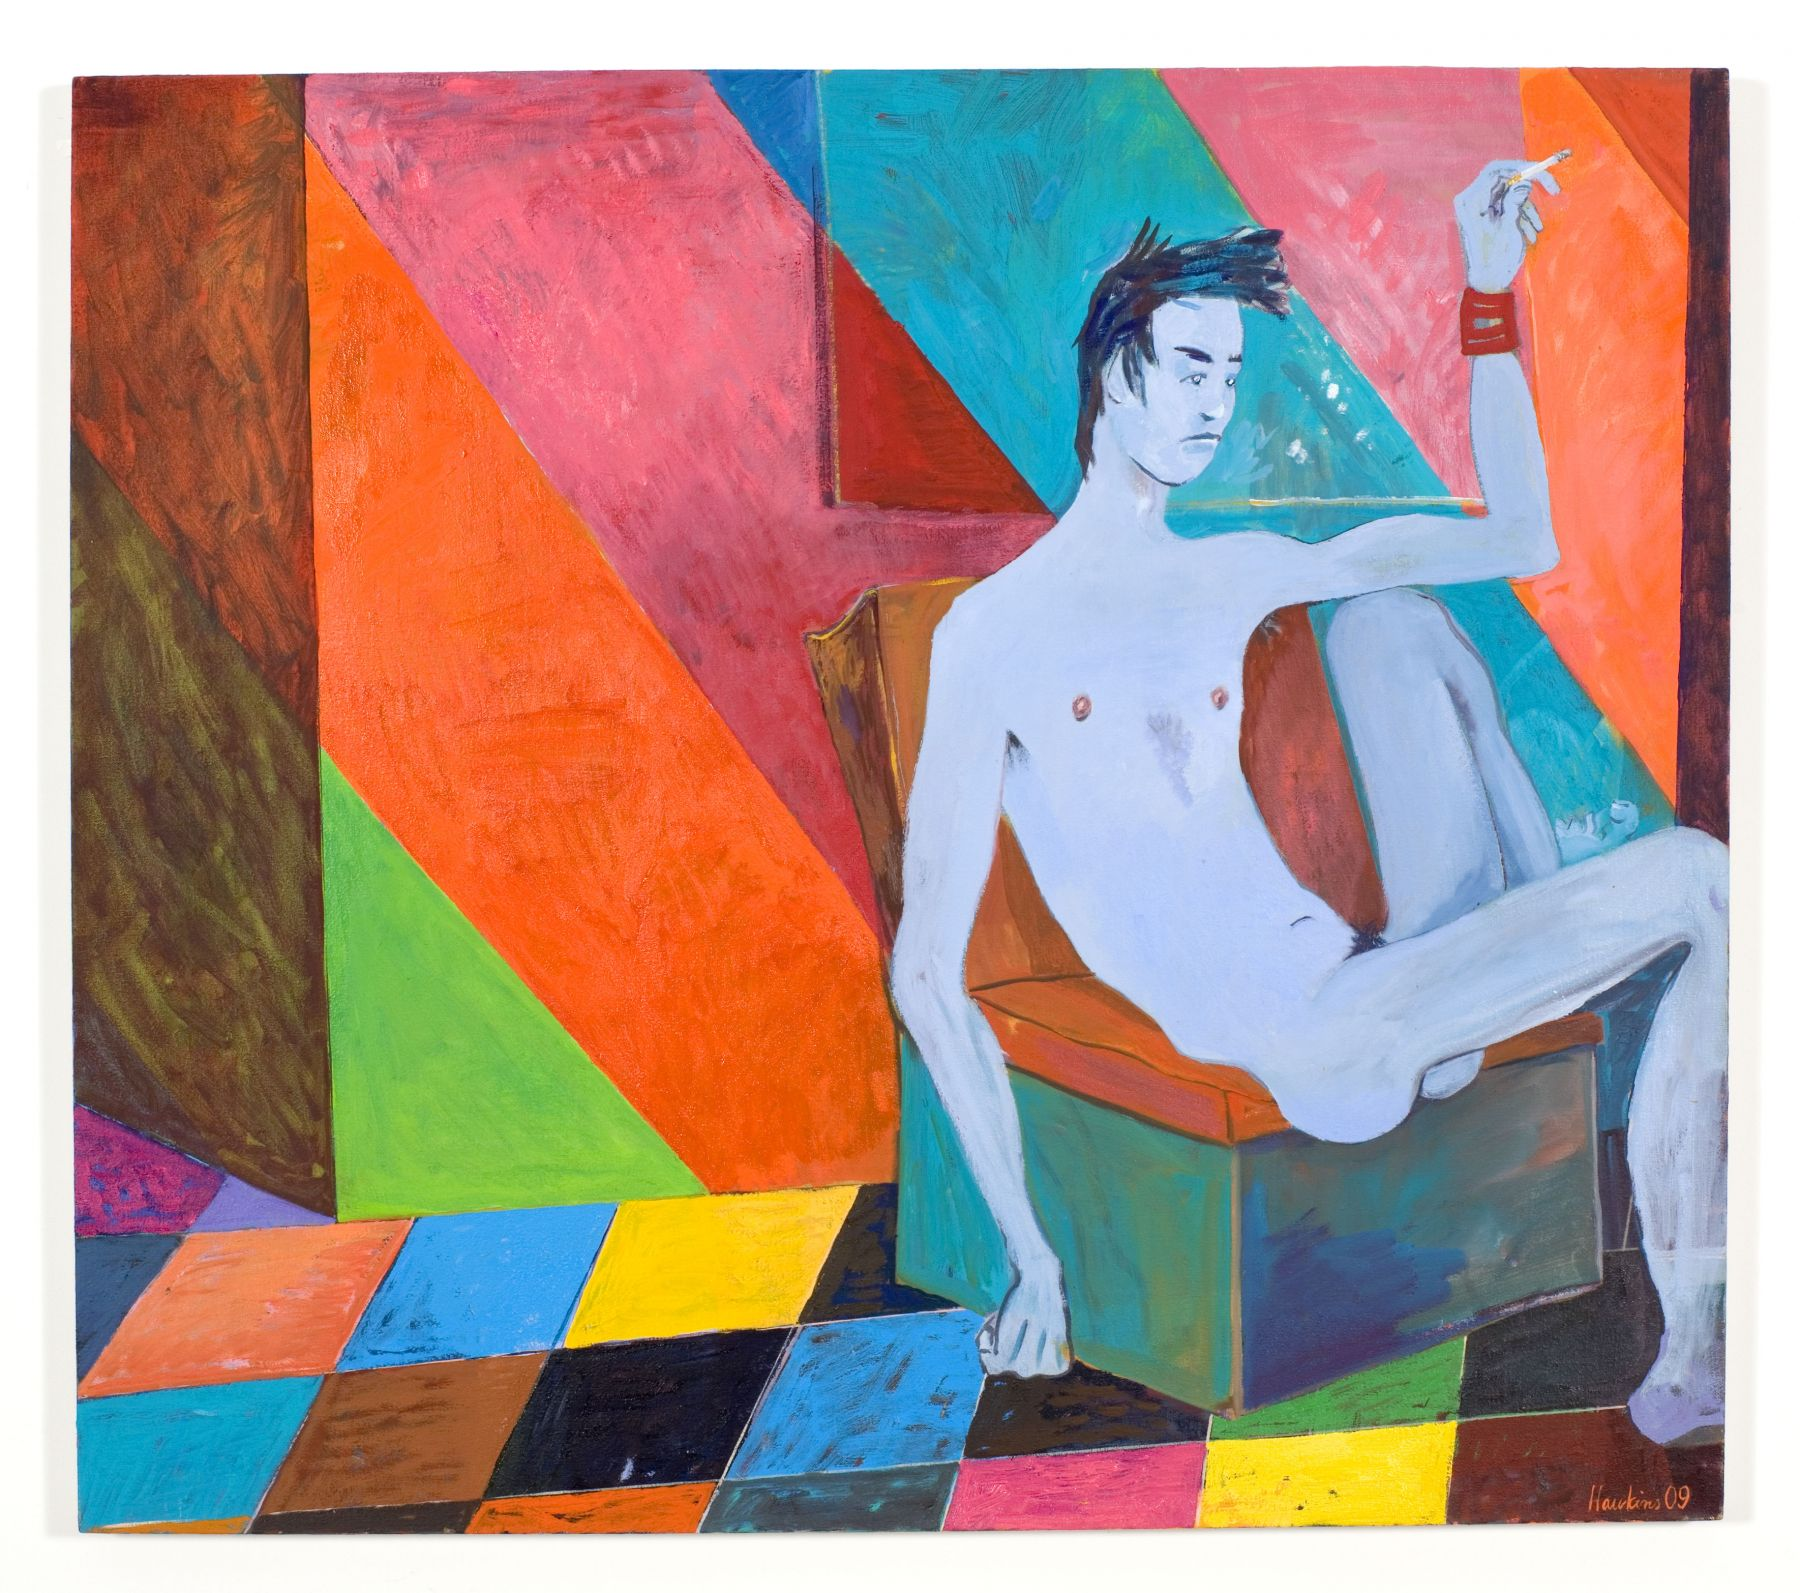 In between shows, 2009, oil on linen, 37 x 42 inches